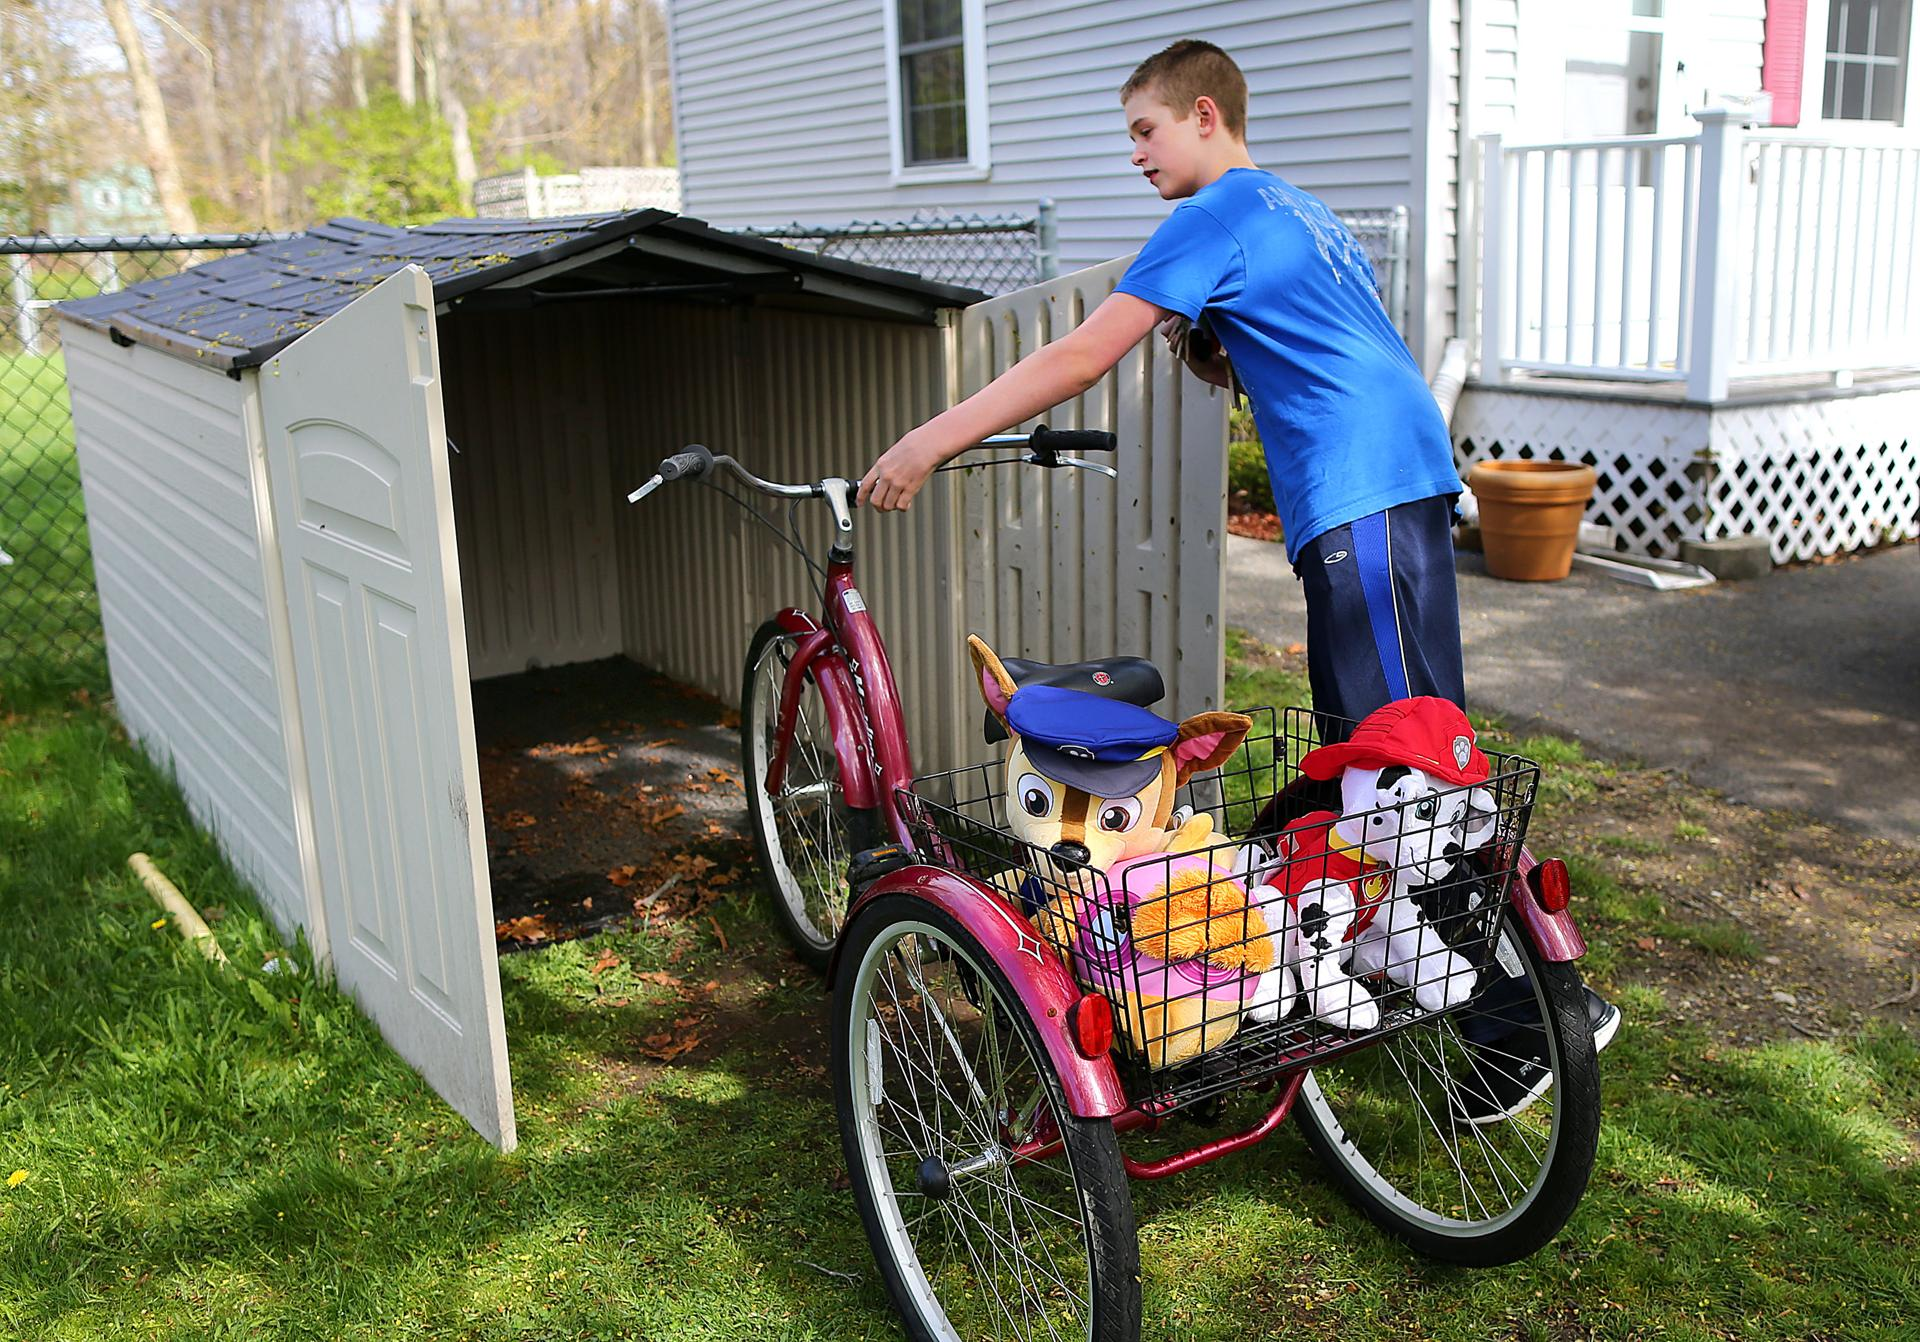 Dillon put his tricycle away in a front yard shed.